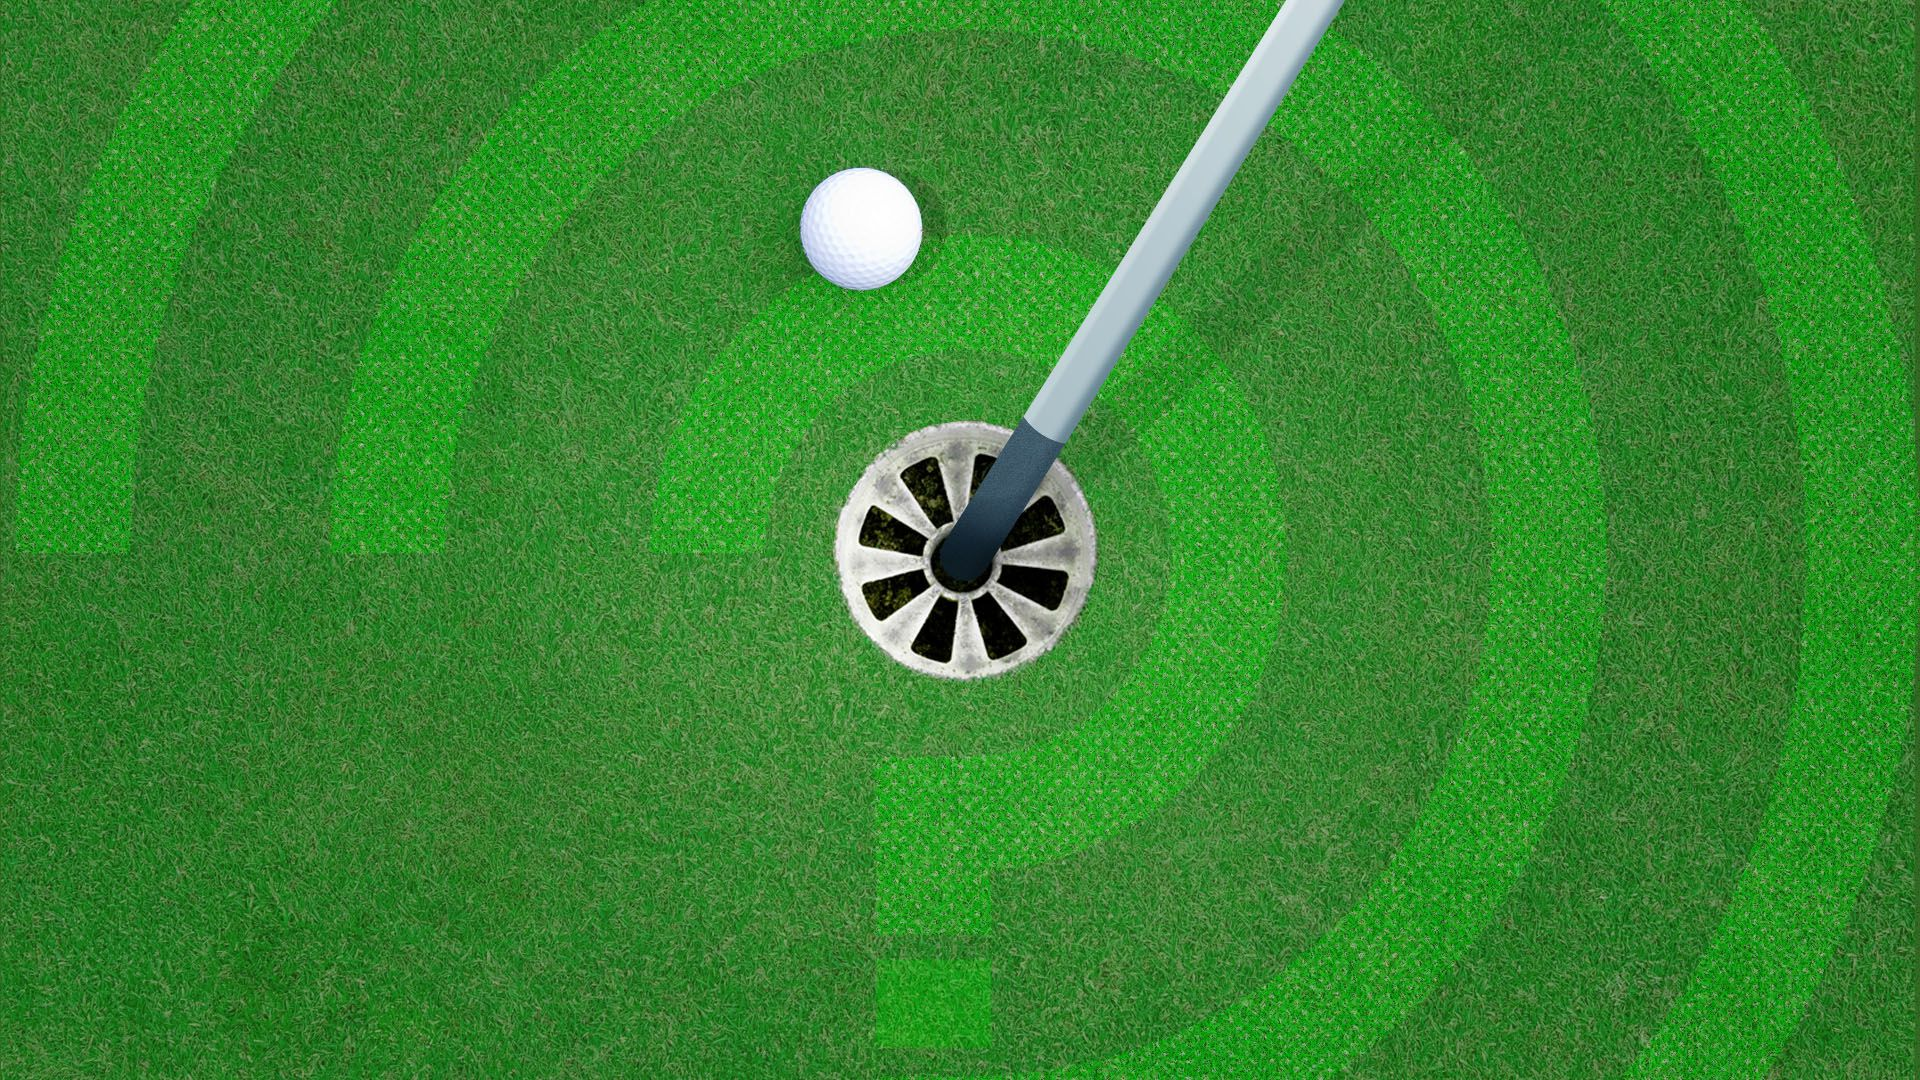 Illustration of golf hole with question marks in the turf around it